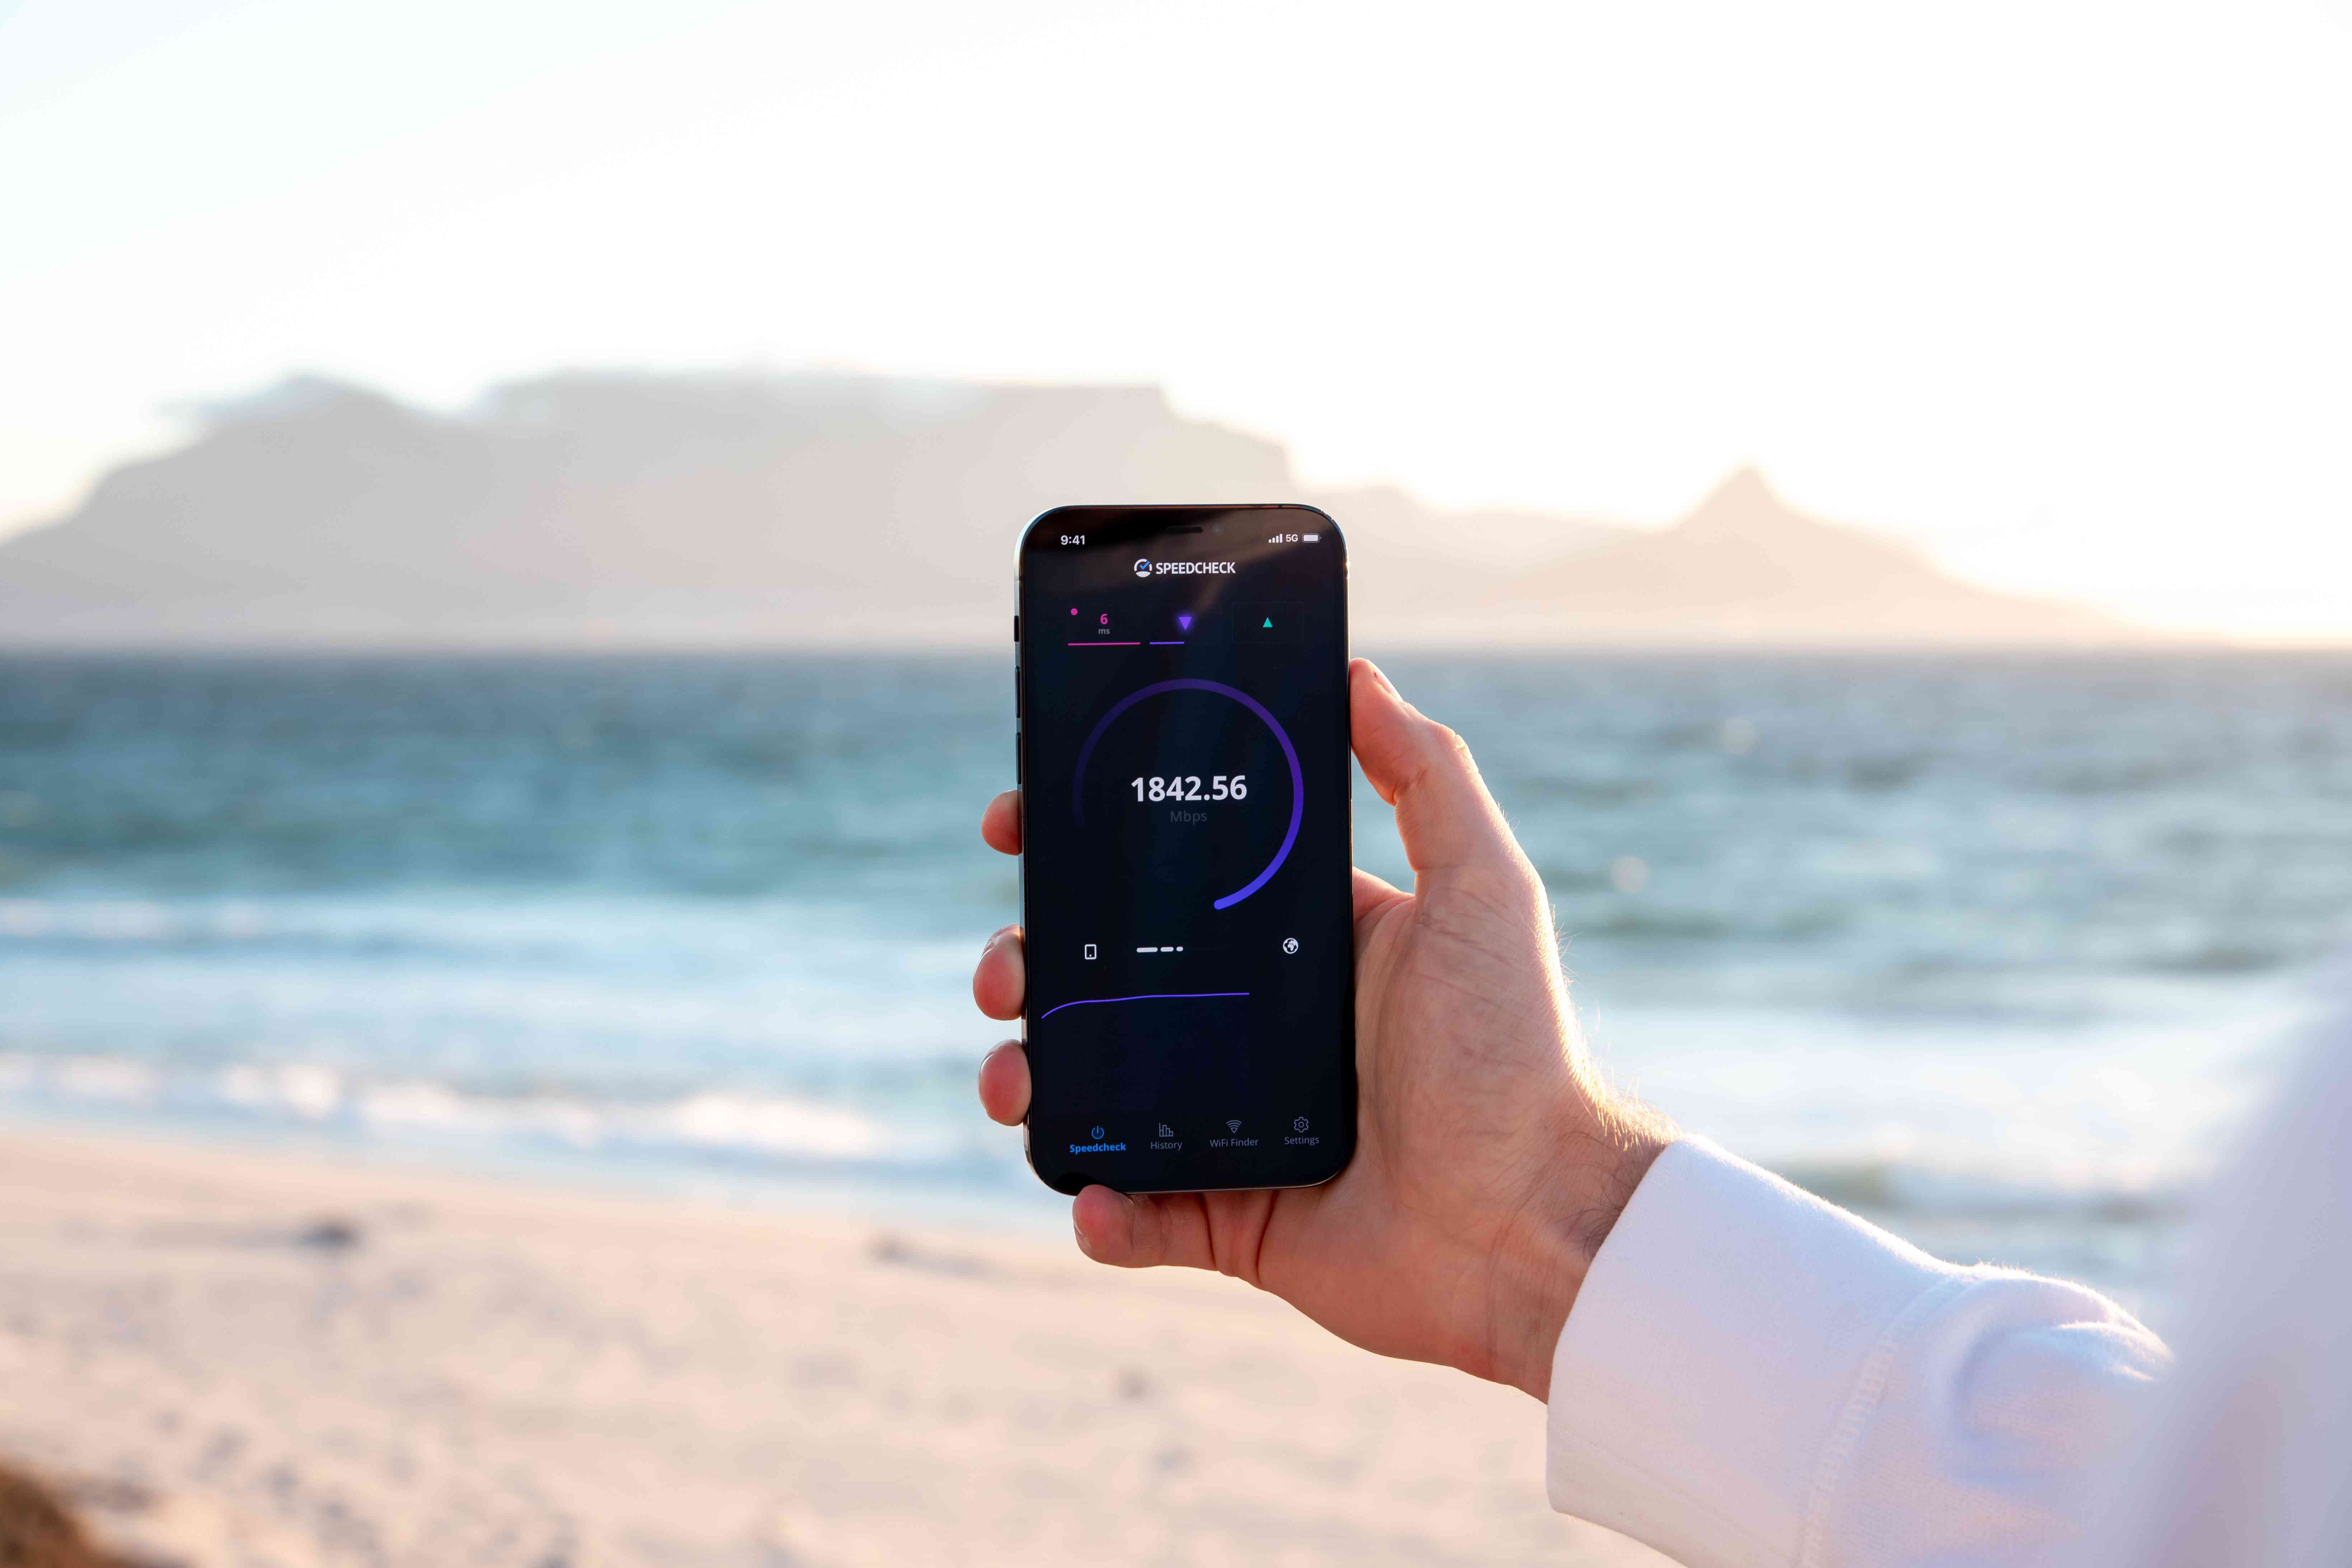 Hand holding phone with speed test on the screen, beach in the background